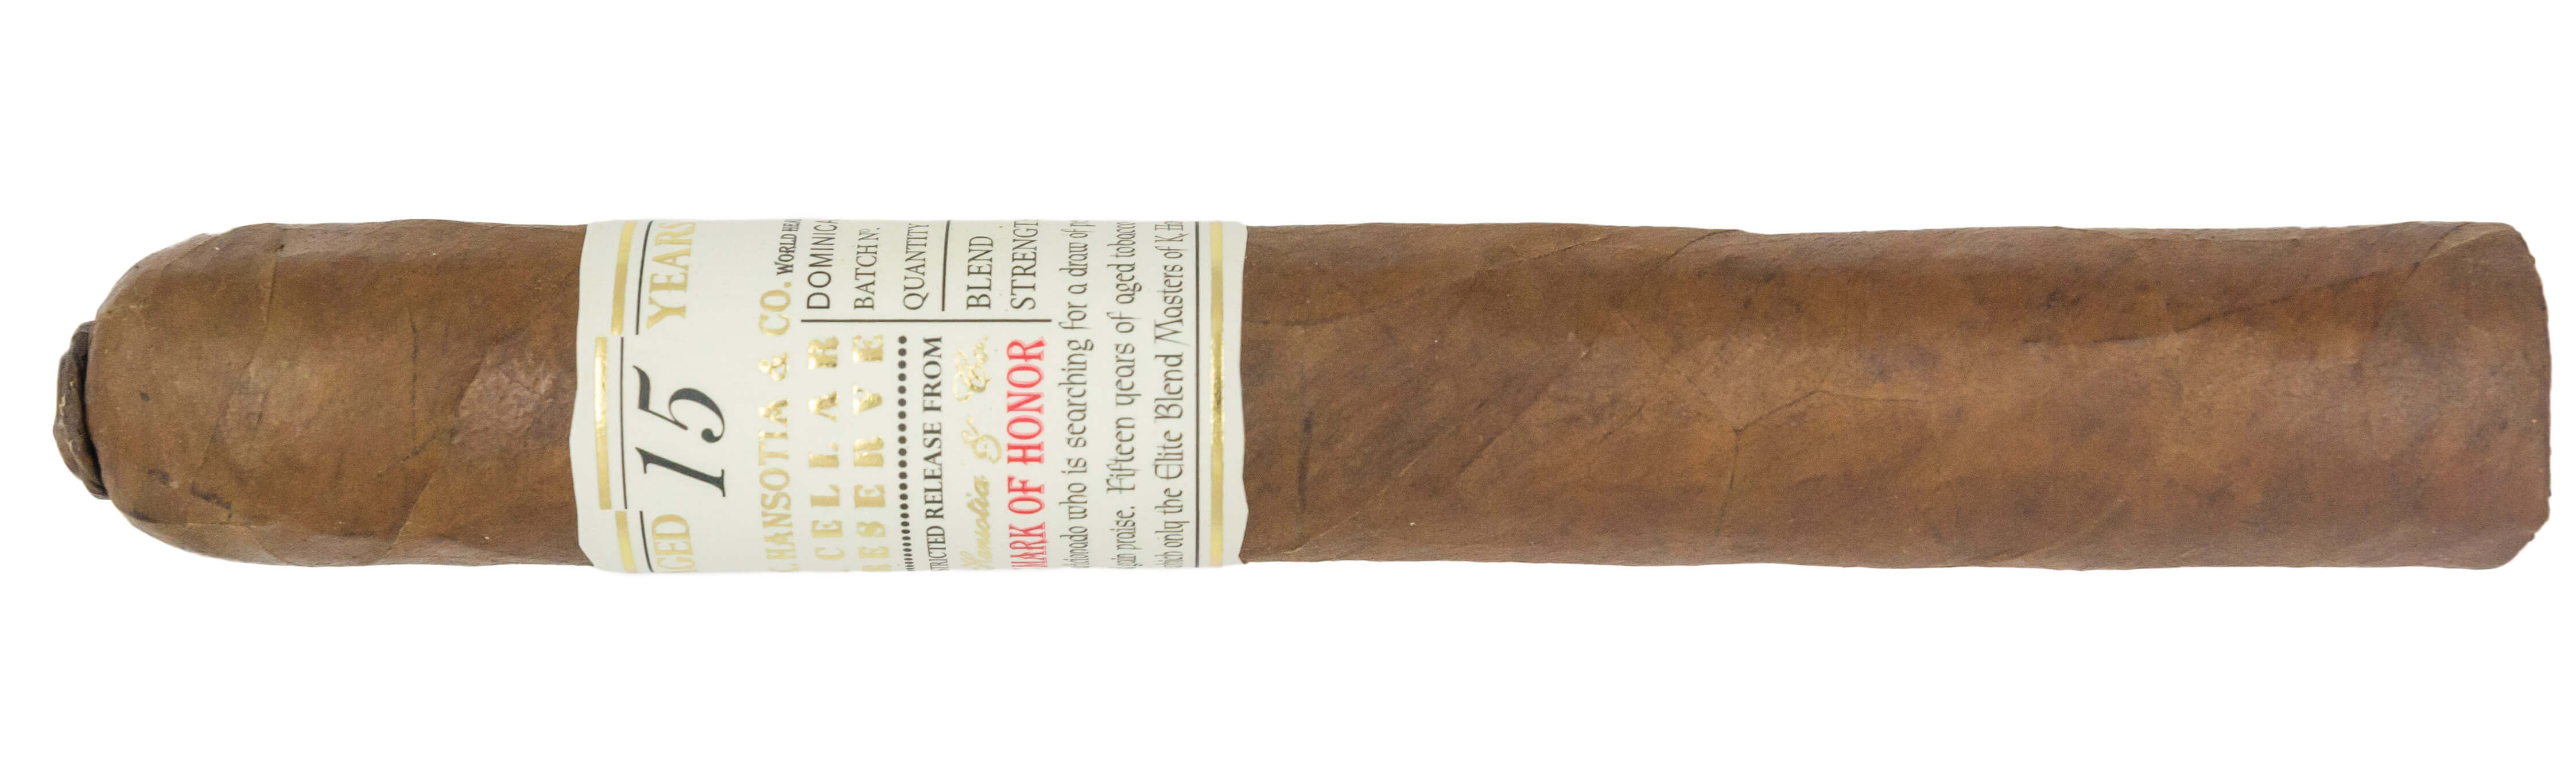 Blind Cigar Review: Gurkha | Cellar Reserve 15 Year Toro